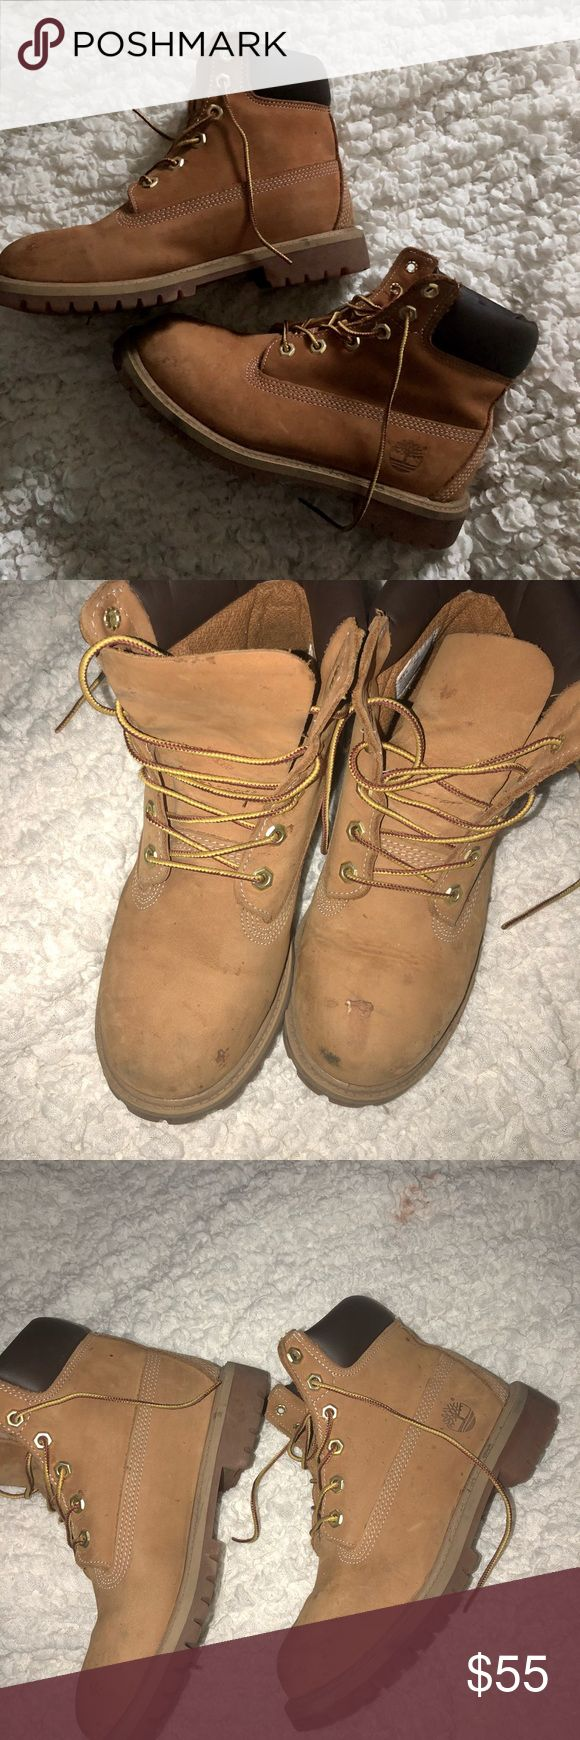 🎉year end sale🎉 timberland boots worn boots but I'm sure they can be cleaned off, however the price reflects this. They are a men's 5.5 but a women's 7. Timberland Shoes Winter & Rain Boots